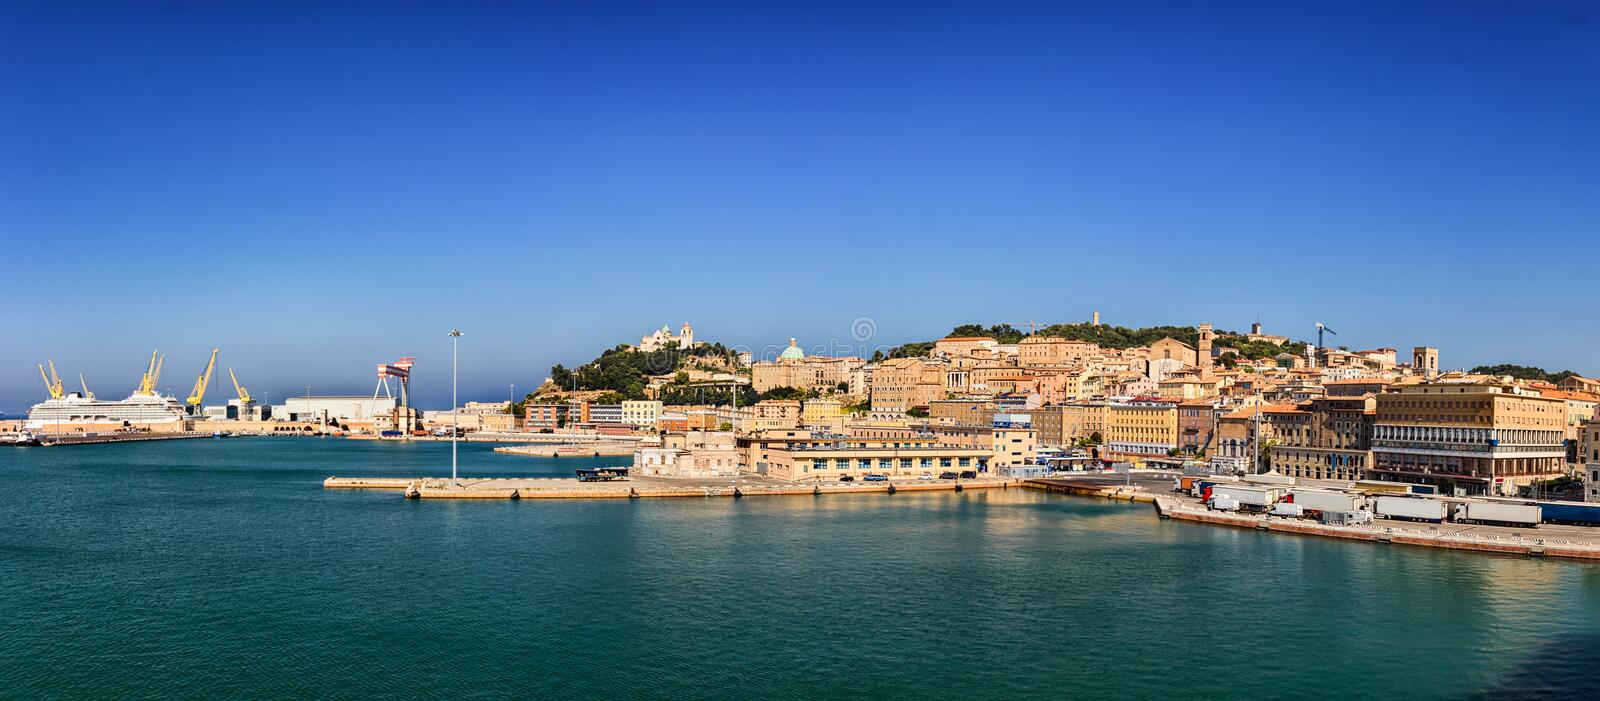 Panoramic view of the port of Ancona in the Marche region, Italy stock images